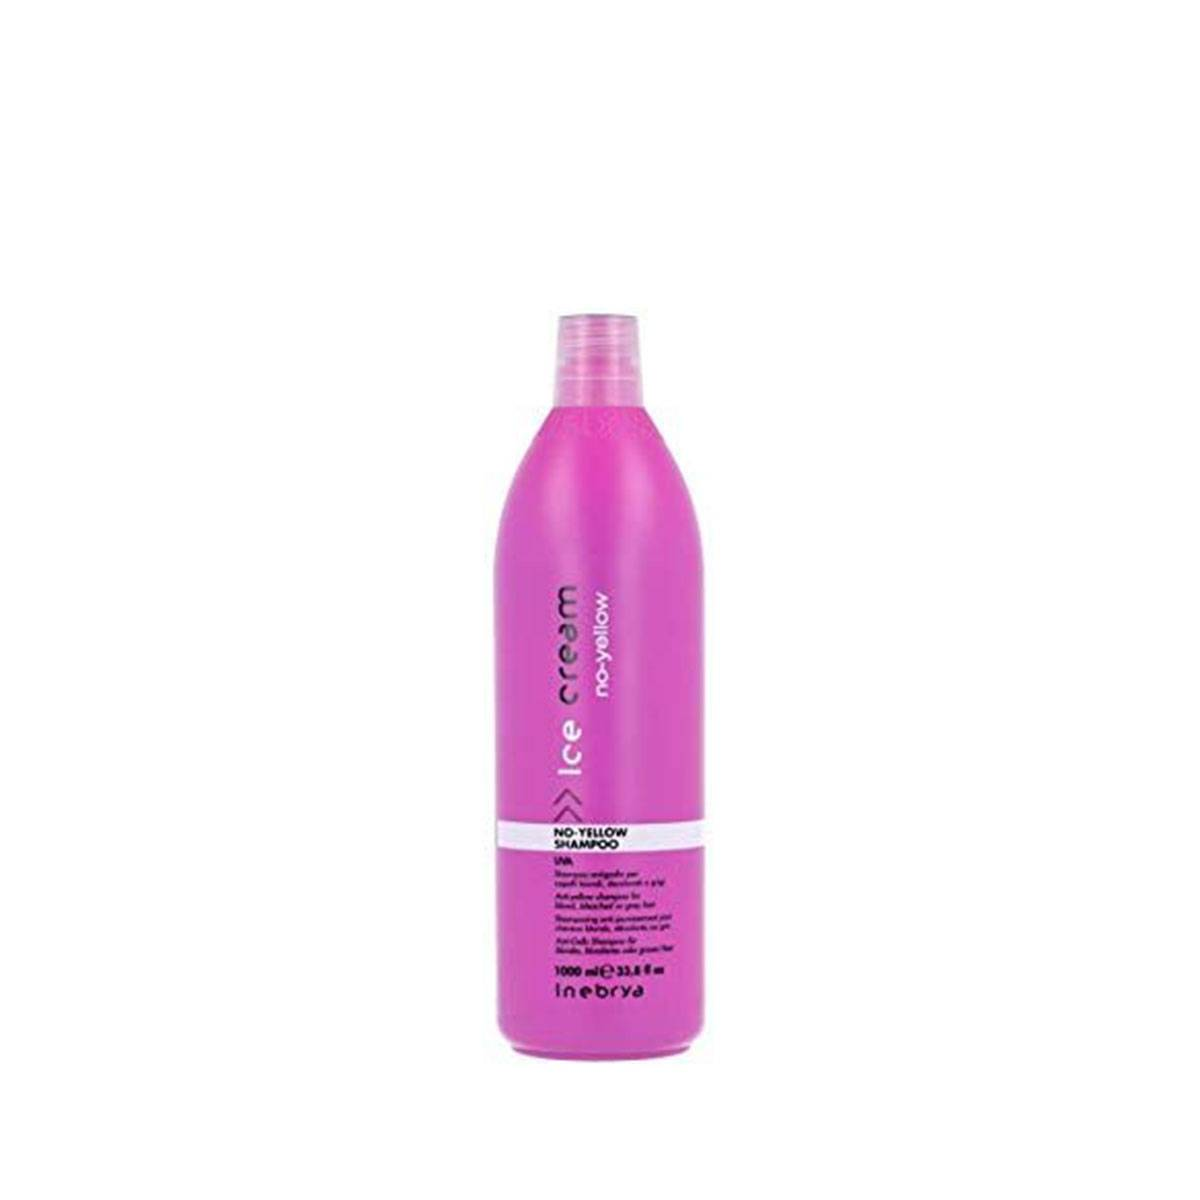 No yellow shampoo 1000 ml uva capelli decolorati o grigi ANTIGIALLO